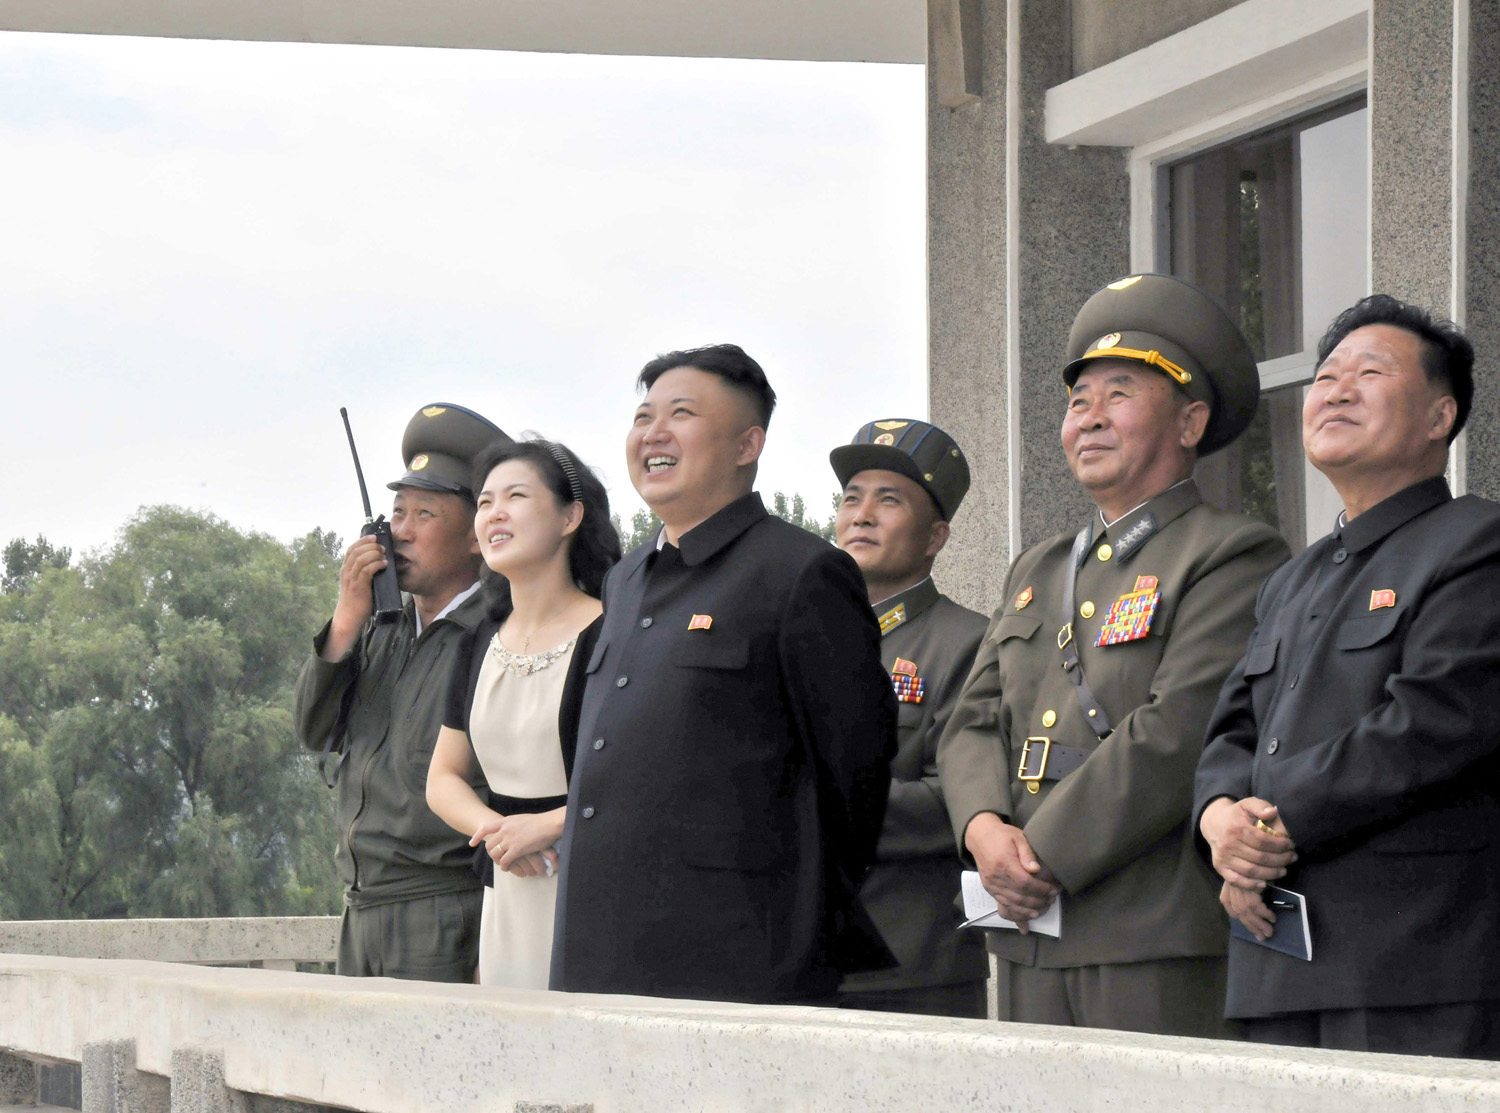 North Korean leader Kim Jong-un (3rd L) and his wife Ri Sol-ju (2nd L) look on during a visit to Unit 1017 of the Korean People's Army (KPA) Air and Anti-Air Force, honoured with the title of O Jung Hup-led 7th Regiment, in this undated picture released by North Korea's Korean Central News Agency (KCNA) on June 21, 2013.